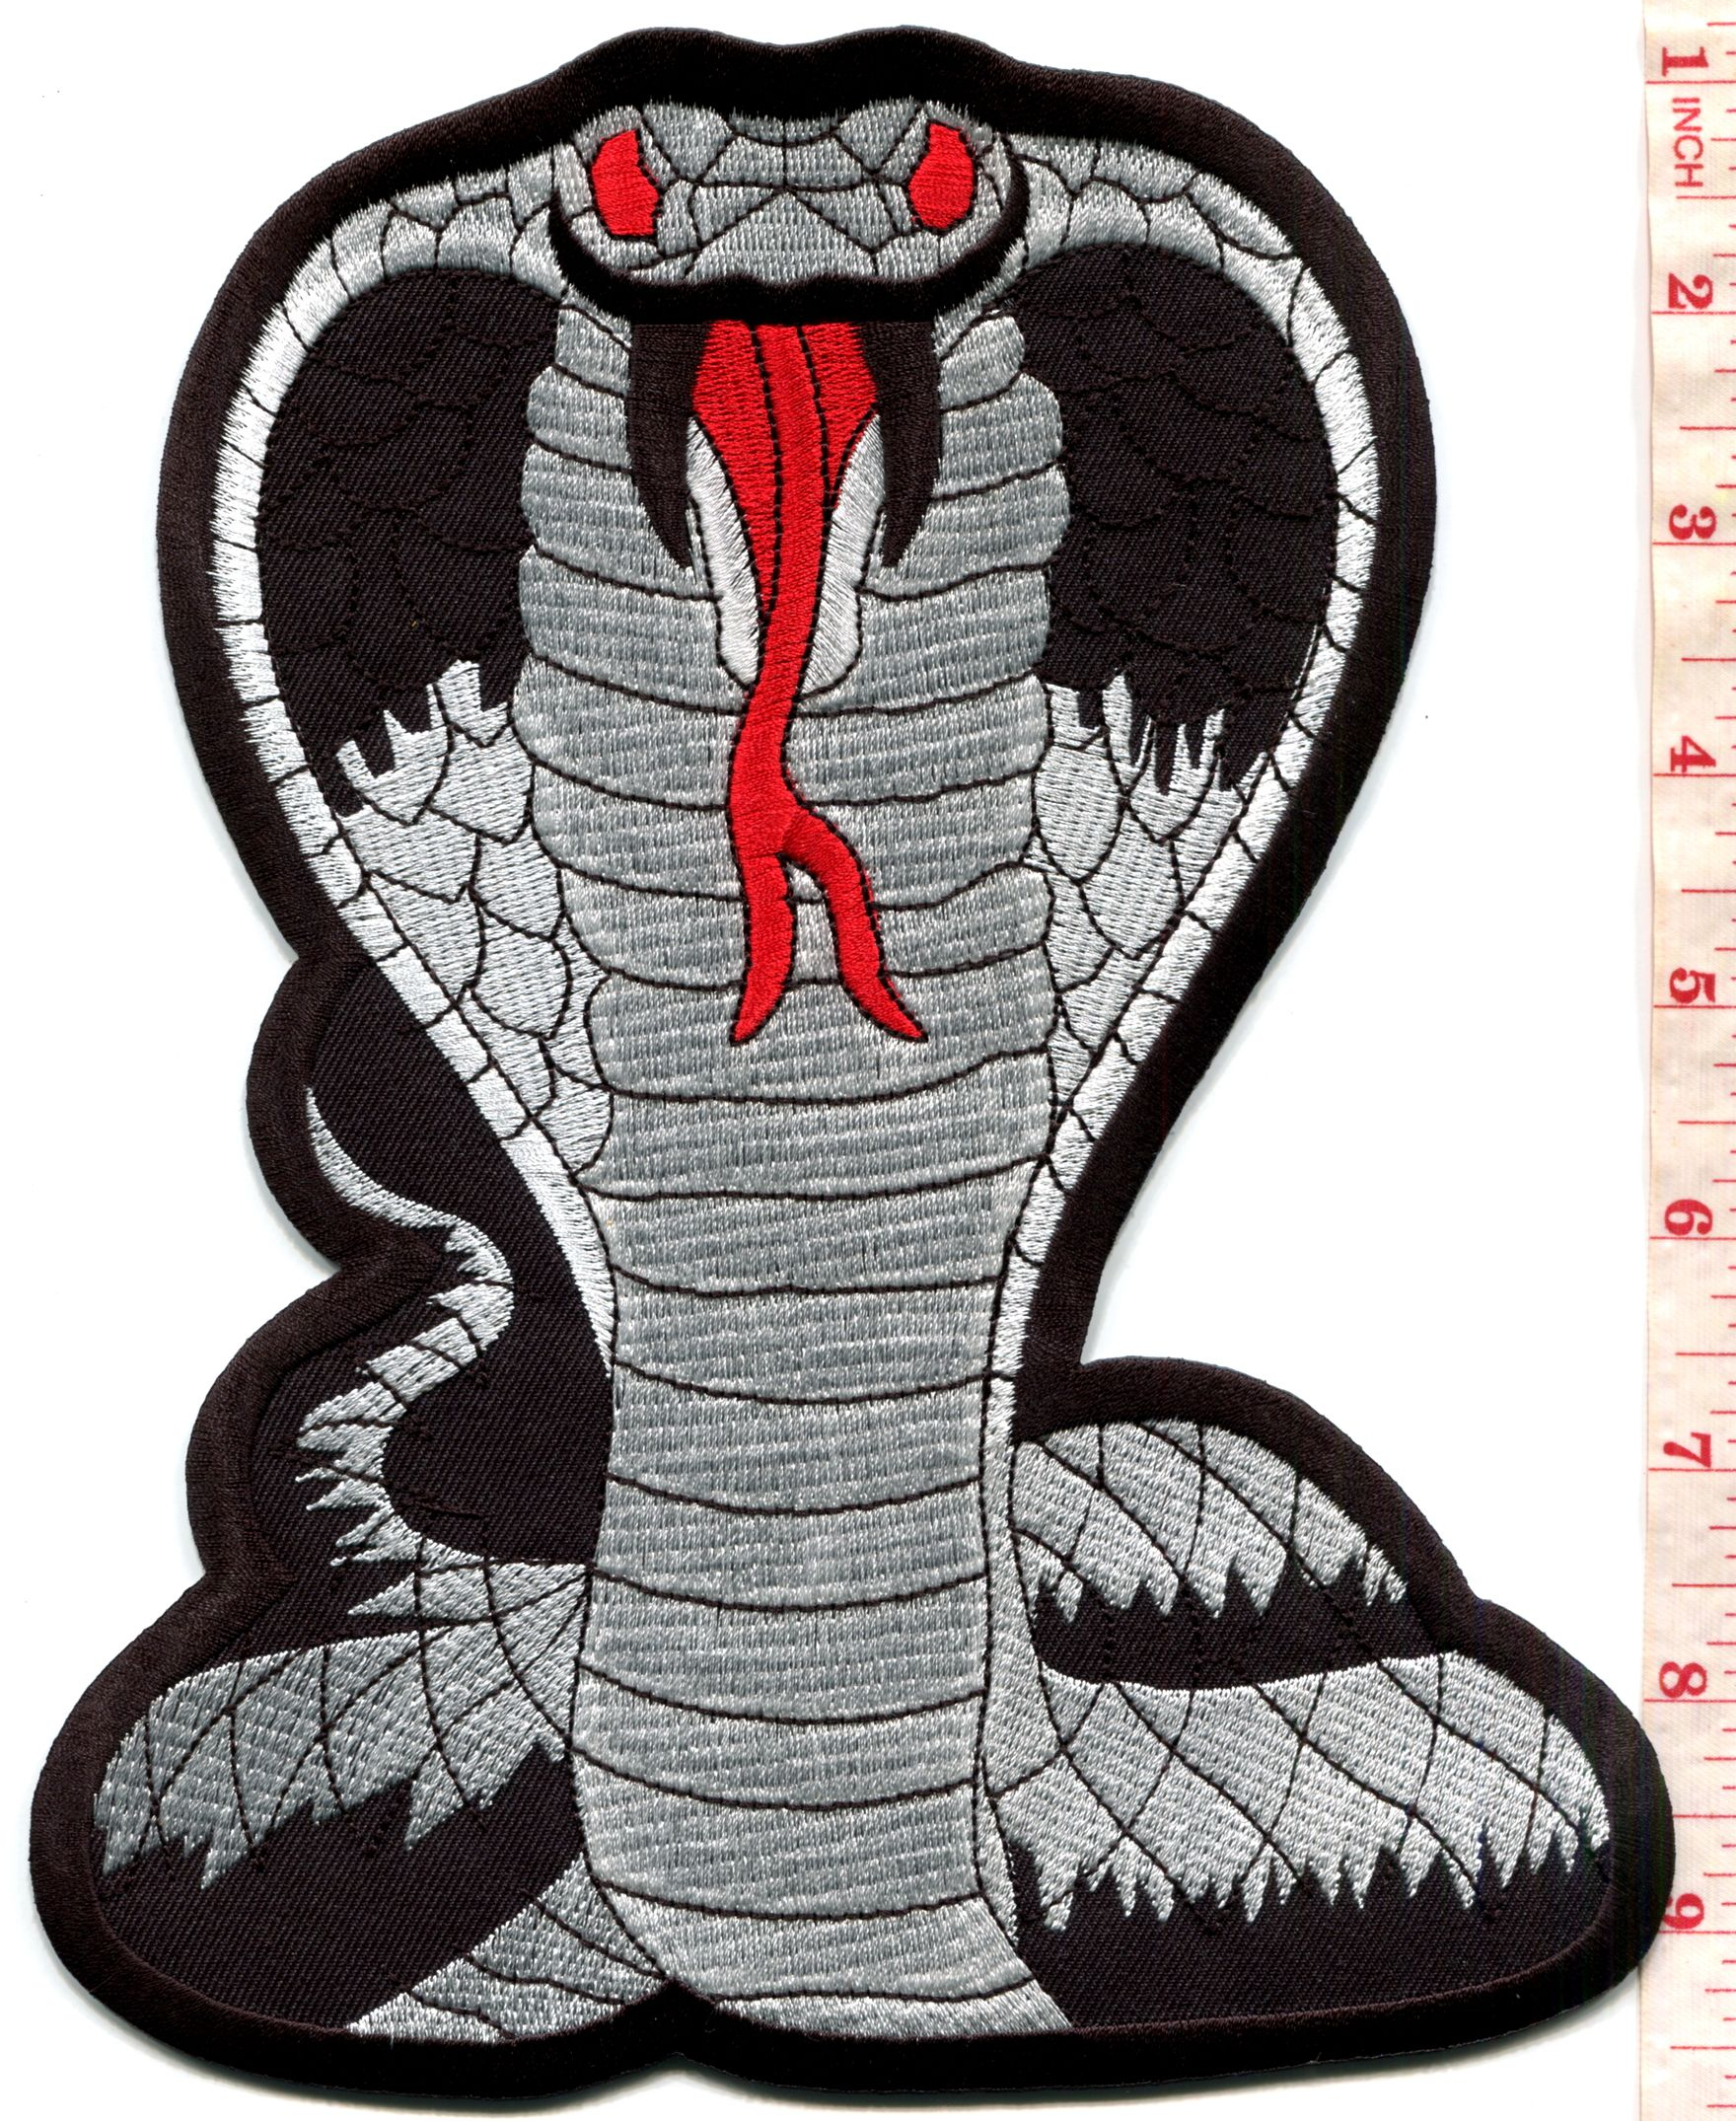 Muay Thai boxing fighters boxers martial arts applique iron-on patch S-53